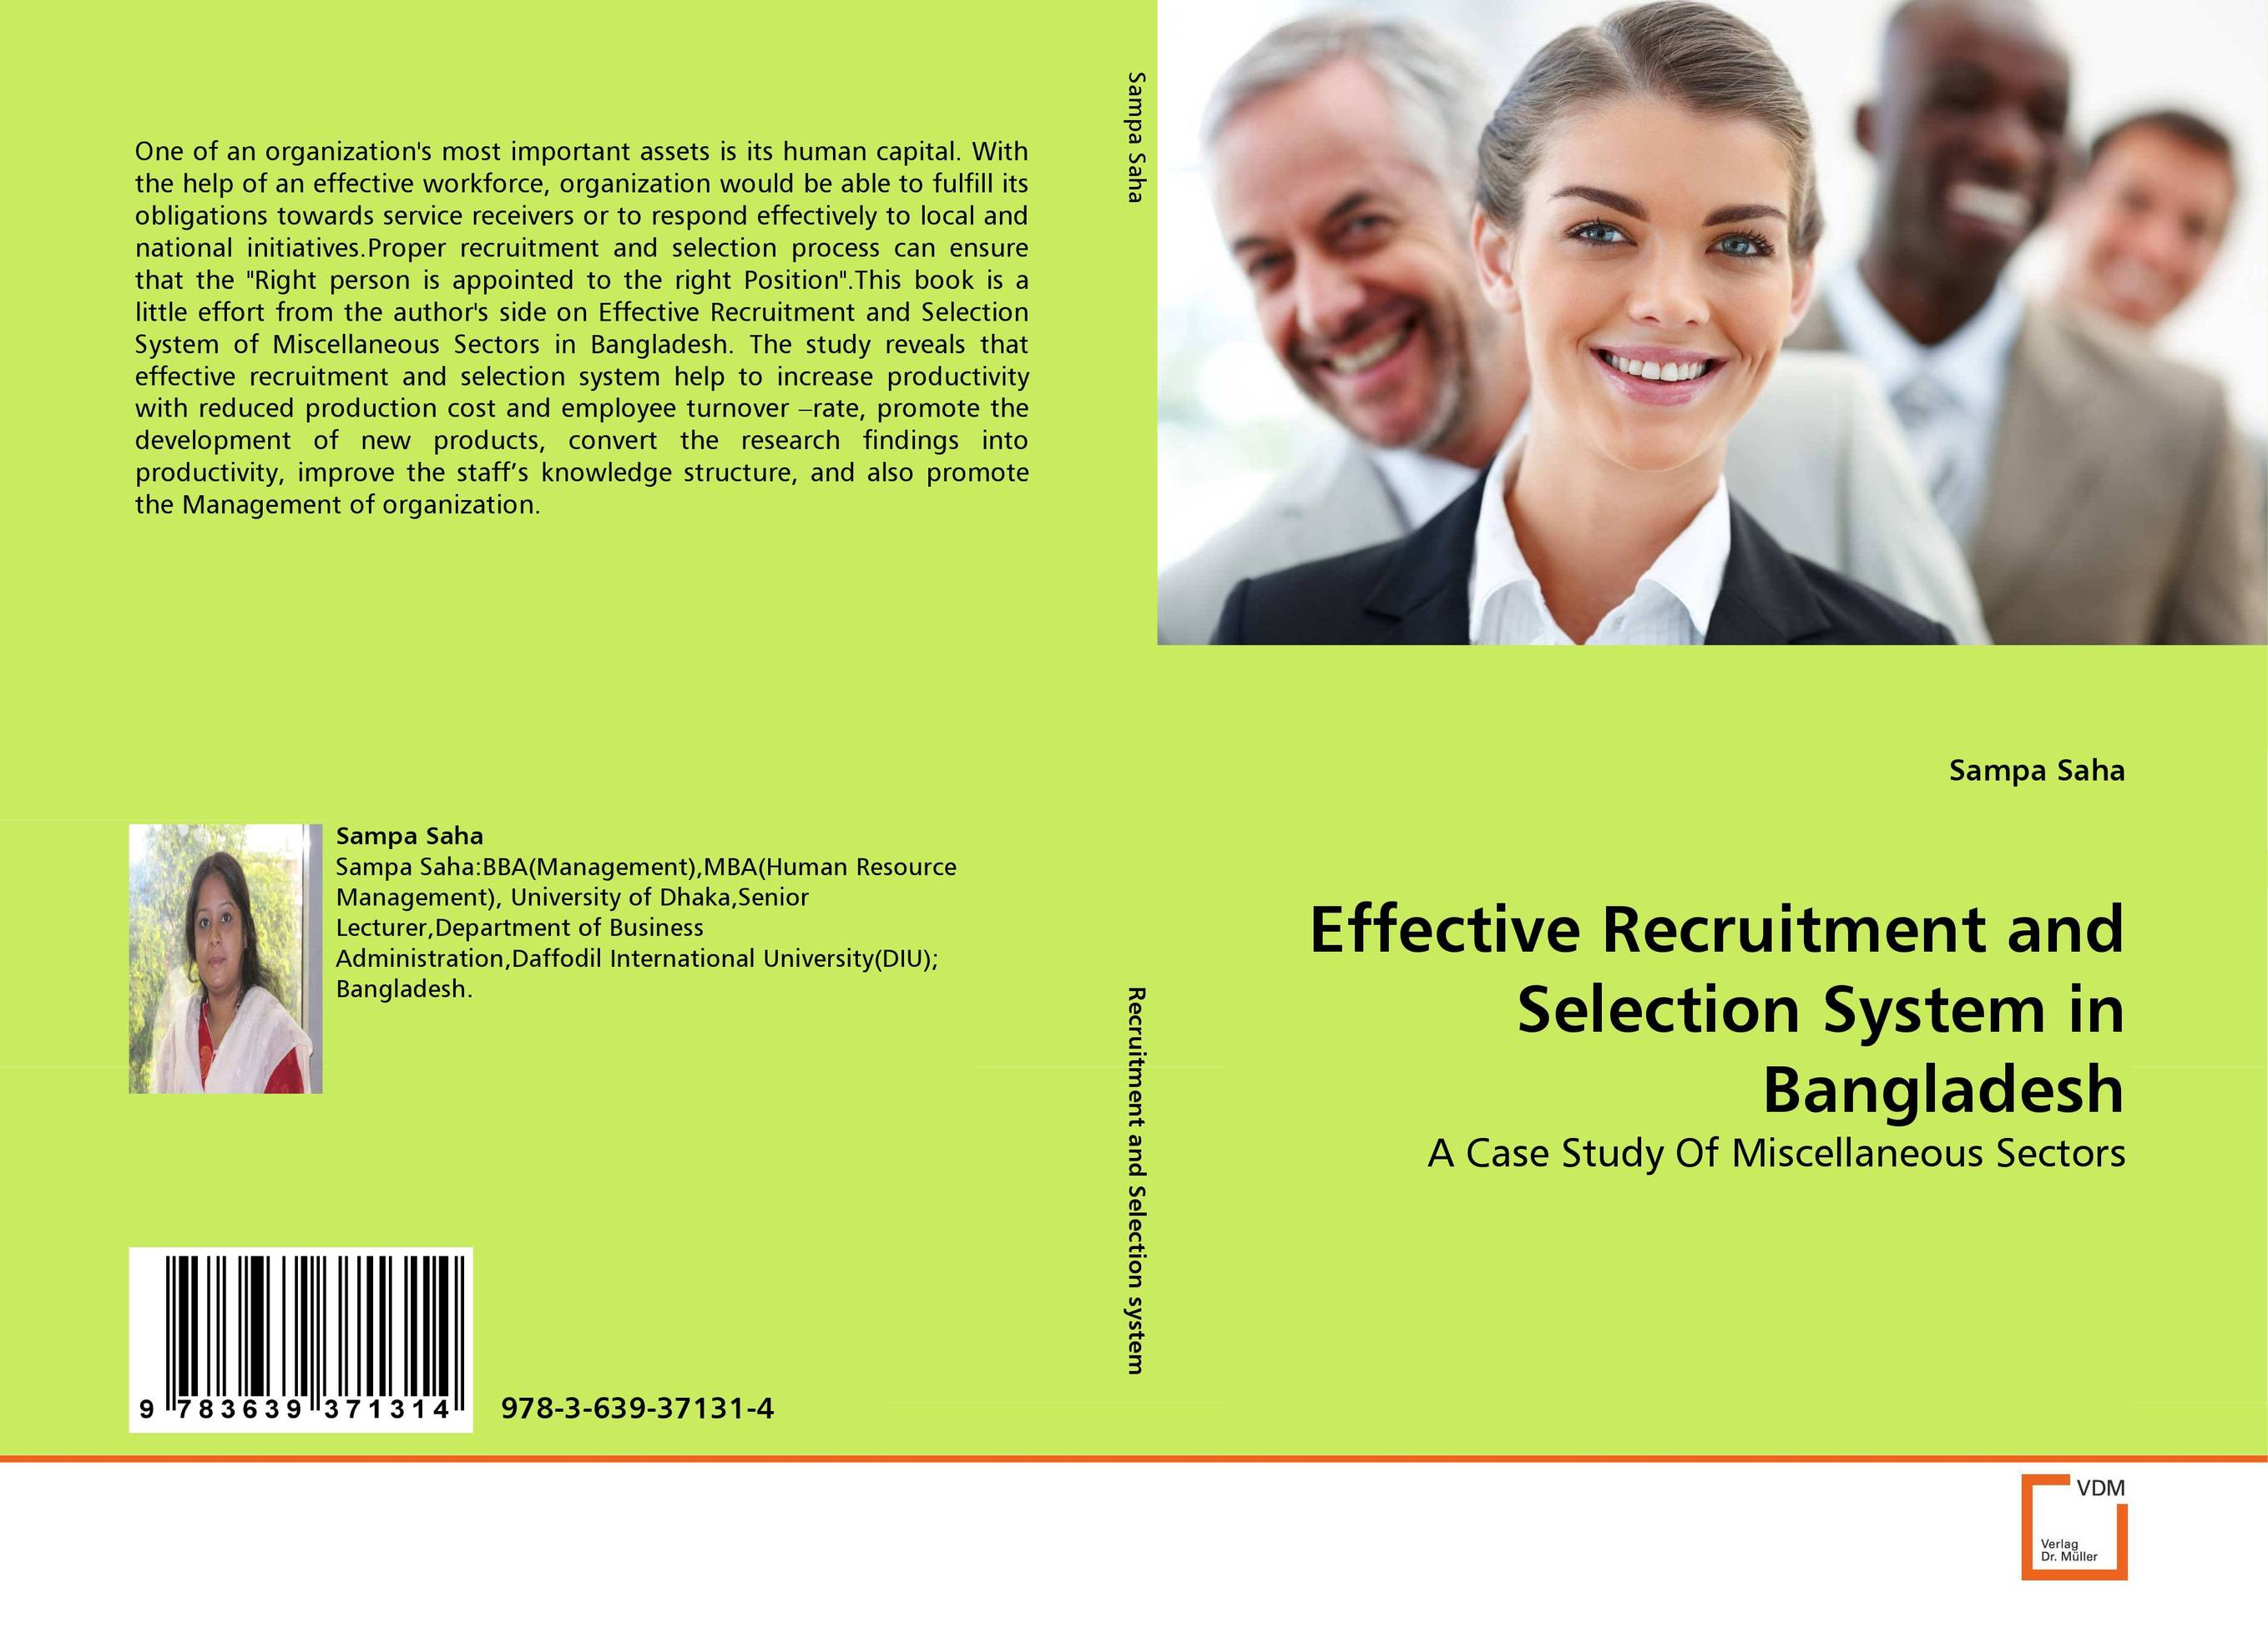 Effective Recruitment and Selection System in Bangladesh